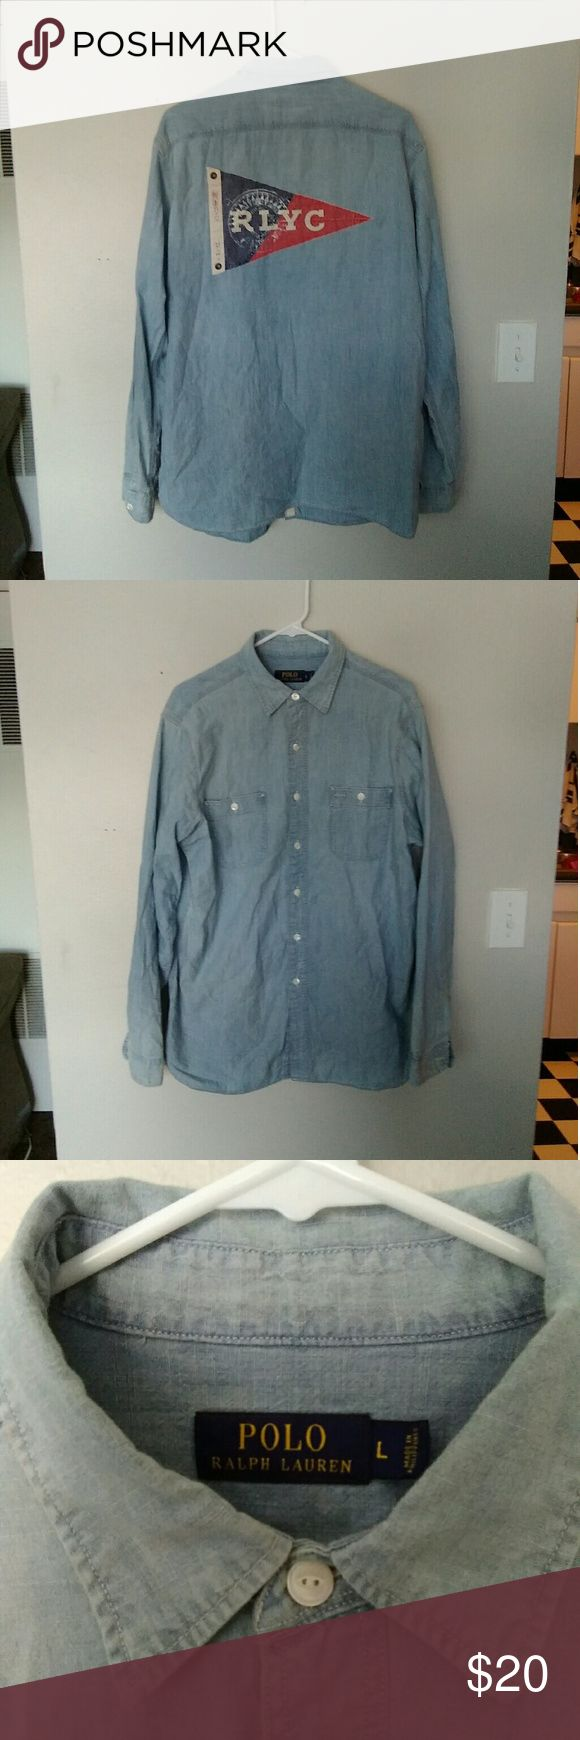 Polo Ralph Lauren flag shirt Polo Ralph Lauren button down light denim shirt with the yacht club flag on the back. Men's size Large and fits true to size. Polo by Ralph Lauren Shirts Polos